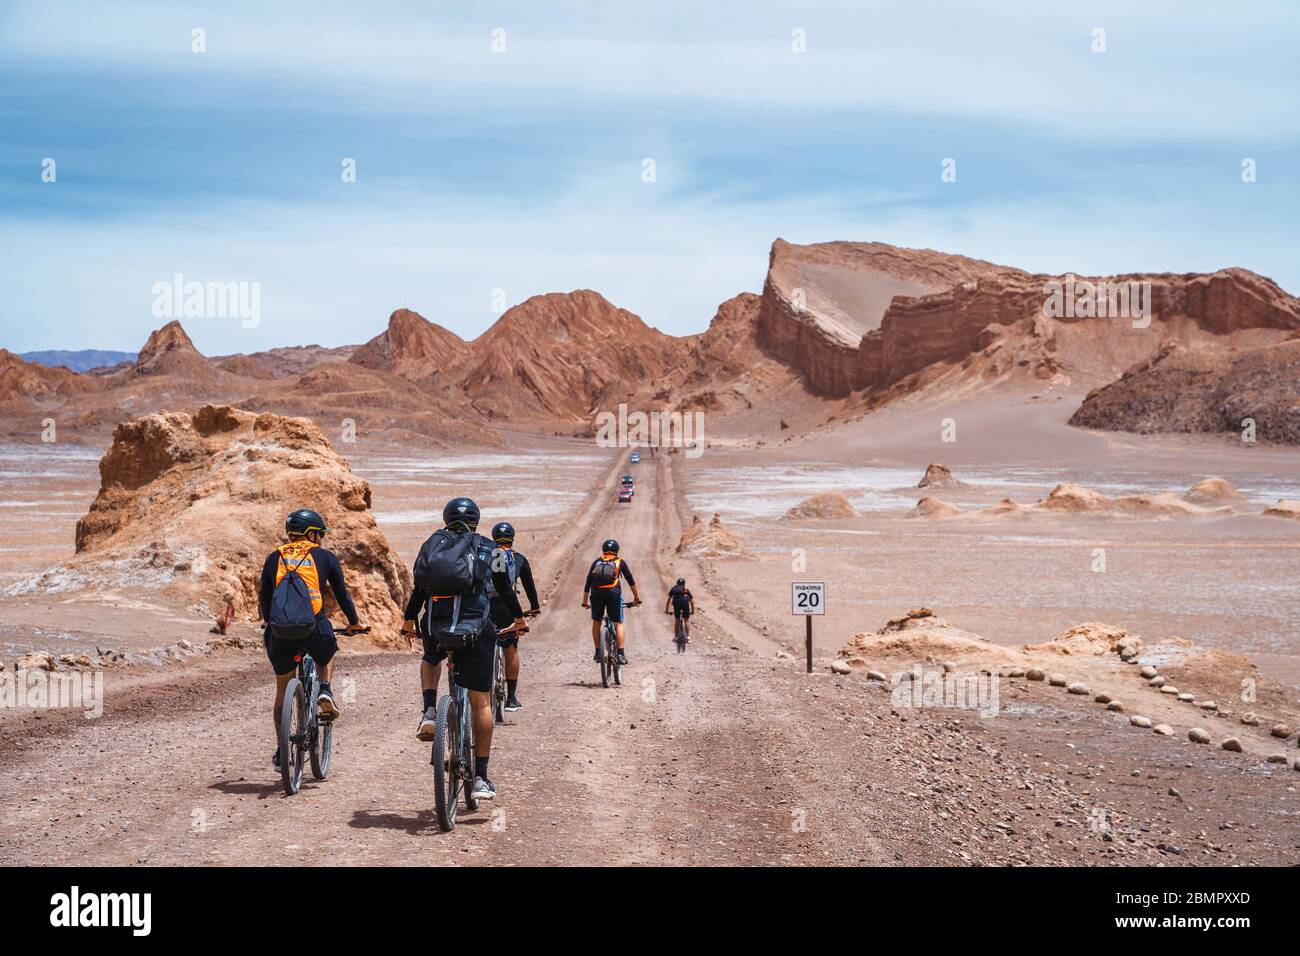 Group Of Cyclists Exploring The Moon Valley Spanish Valle De La Luna In The Atacama Desert Northern Chile South America Stock Photo Alamy